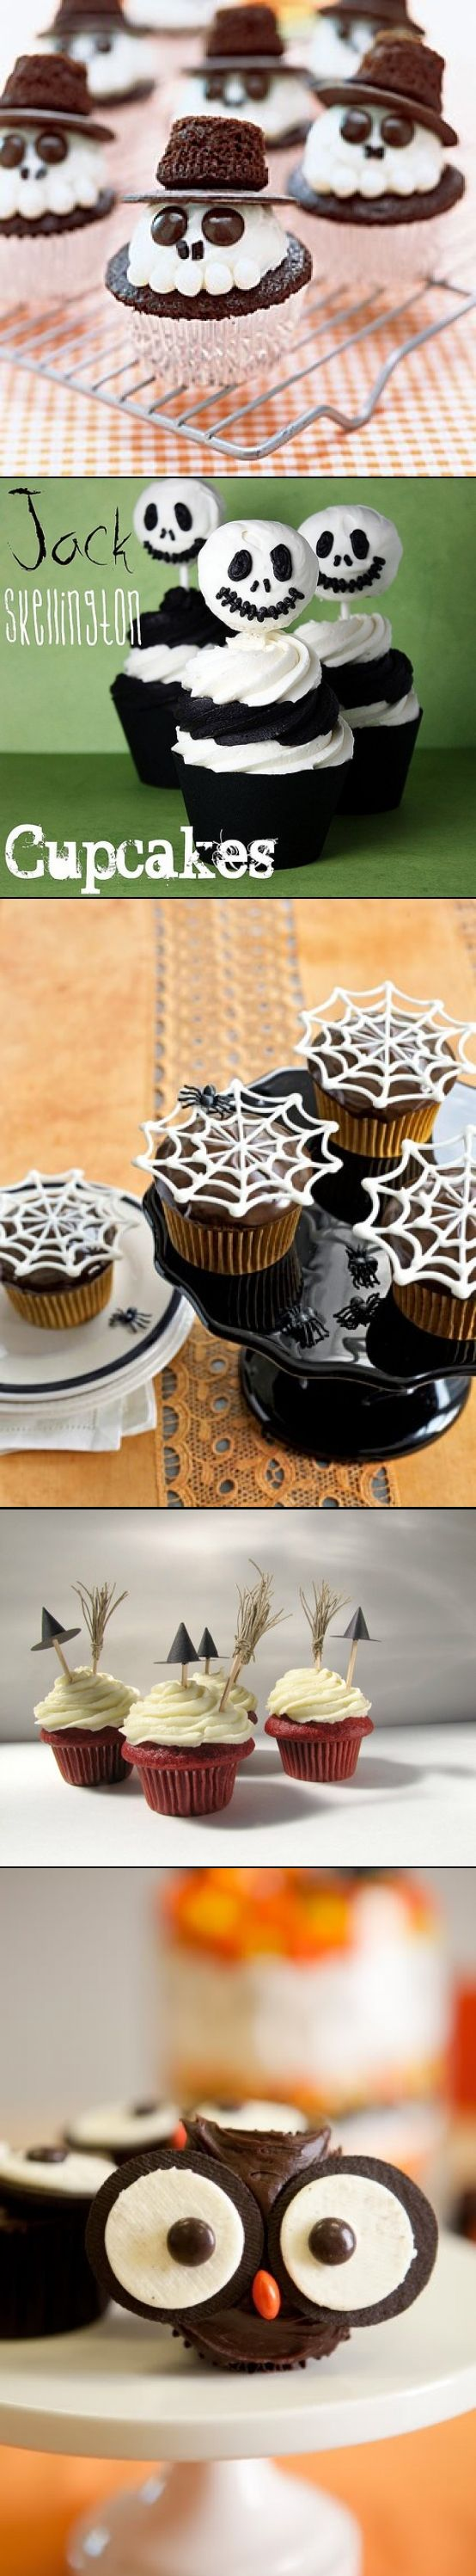 Halloween Cupcakes Part 2 - Read More - http://lilluna.com/halloween-cupcakes-part-2/ - created via http://pinthemall.net